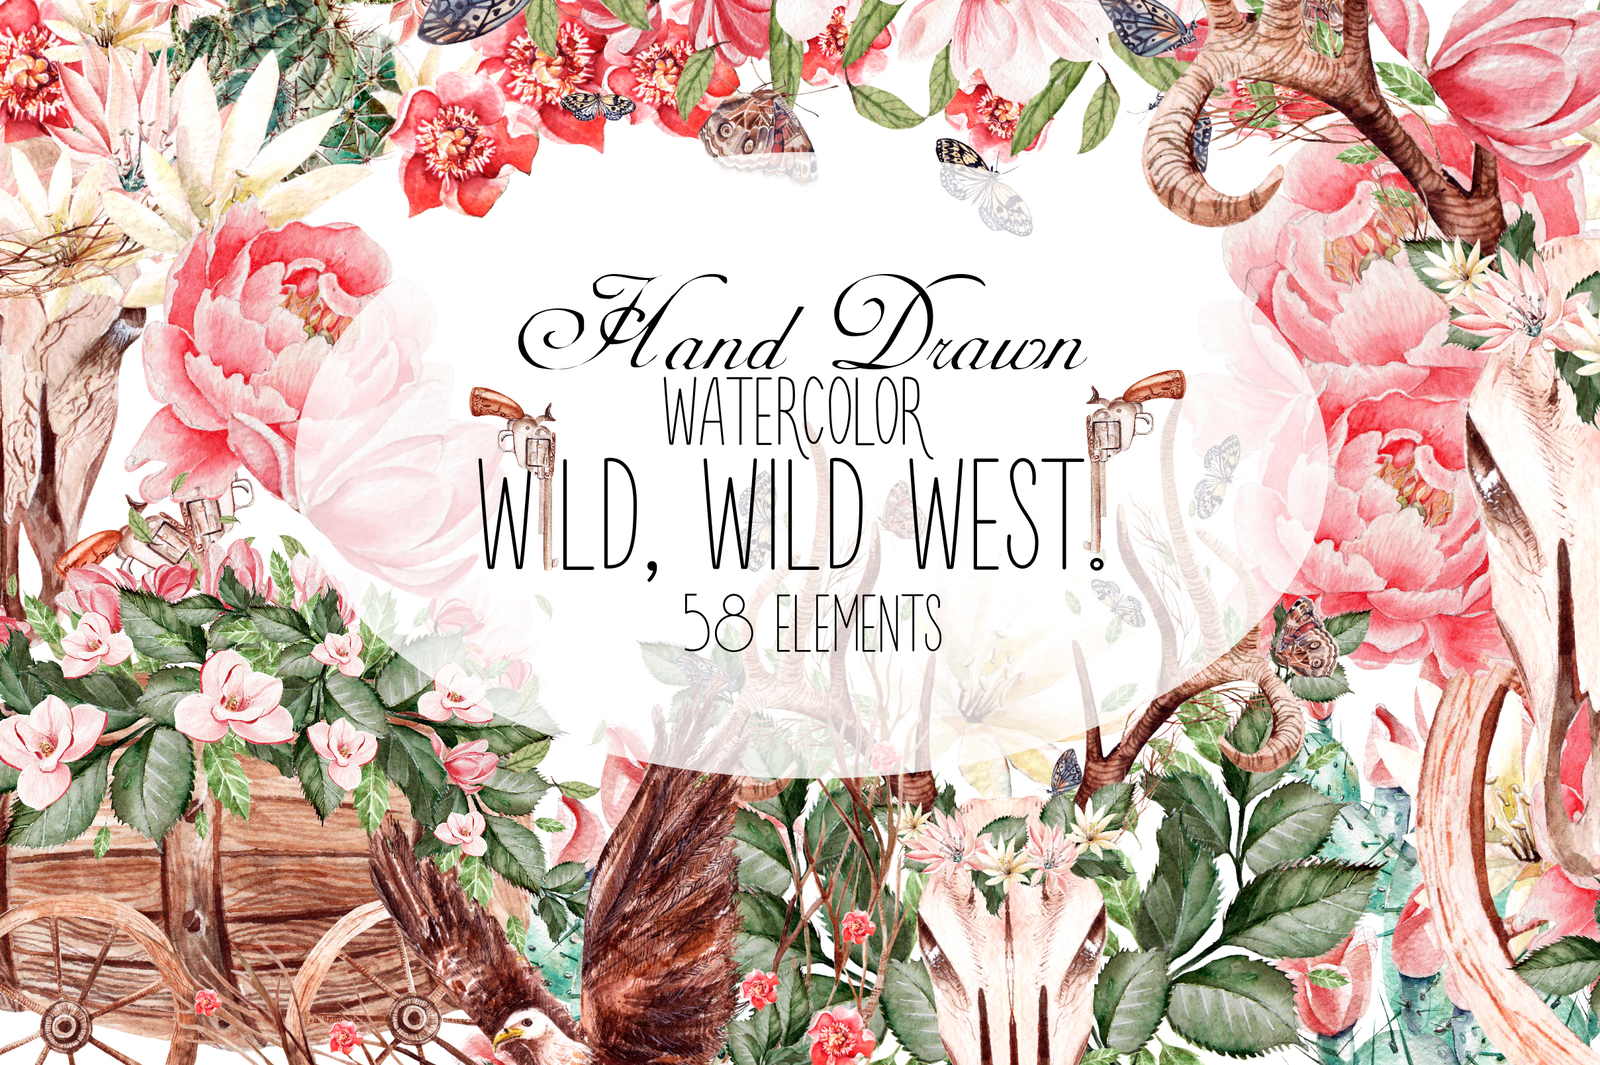 Hand Drawn Watercolor WILD, WILD WEST!